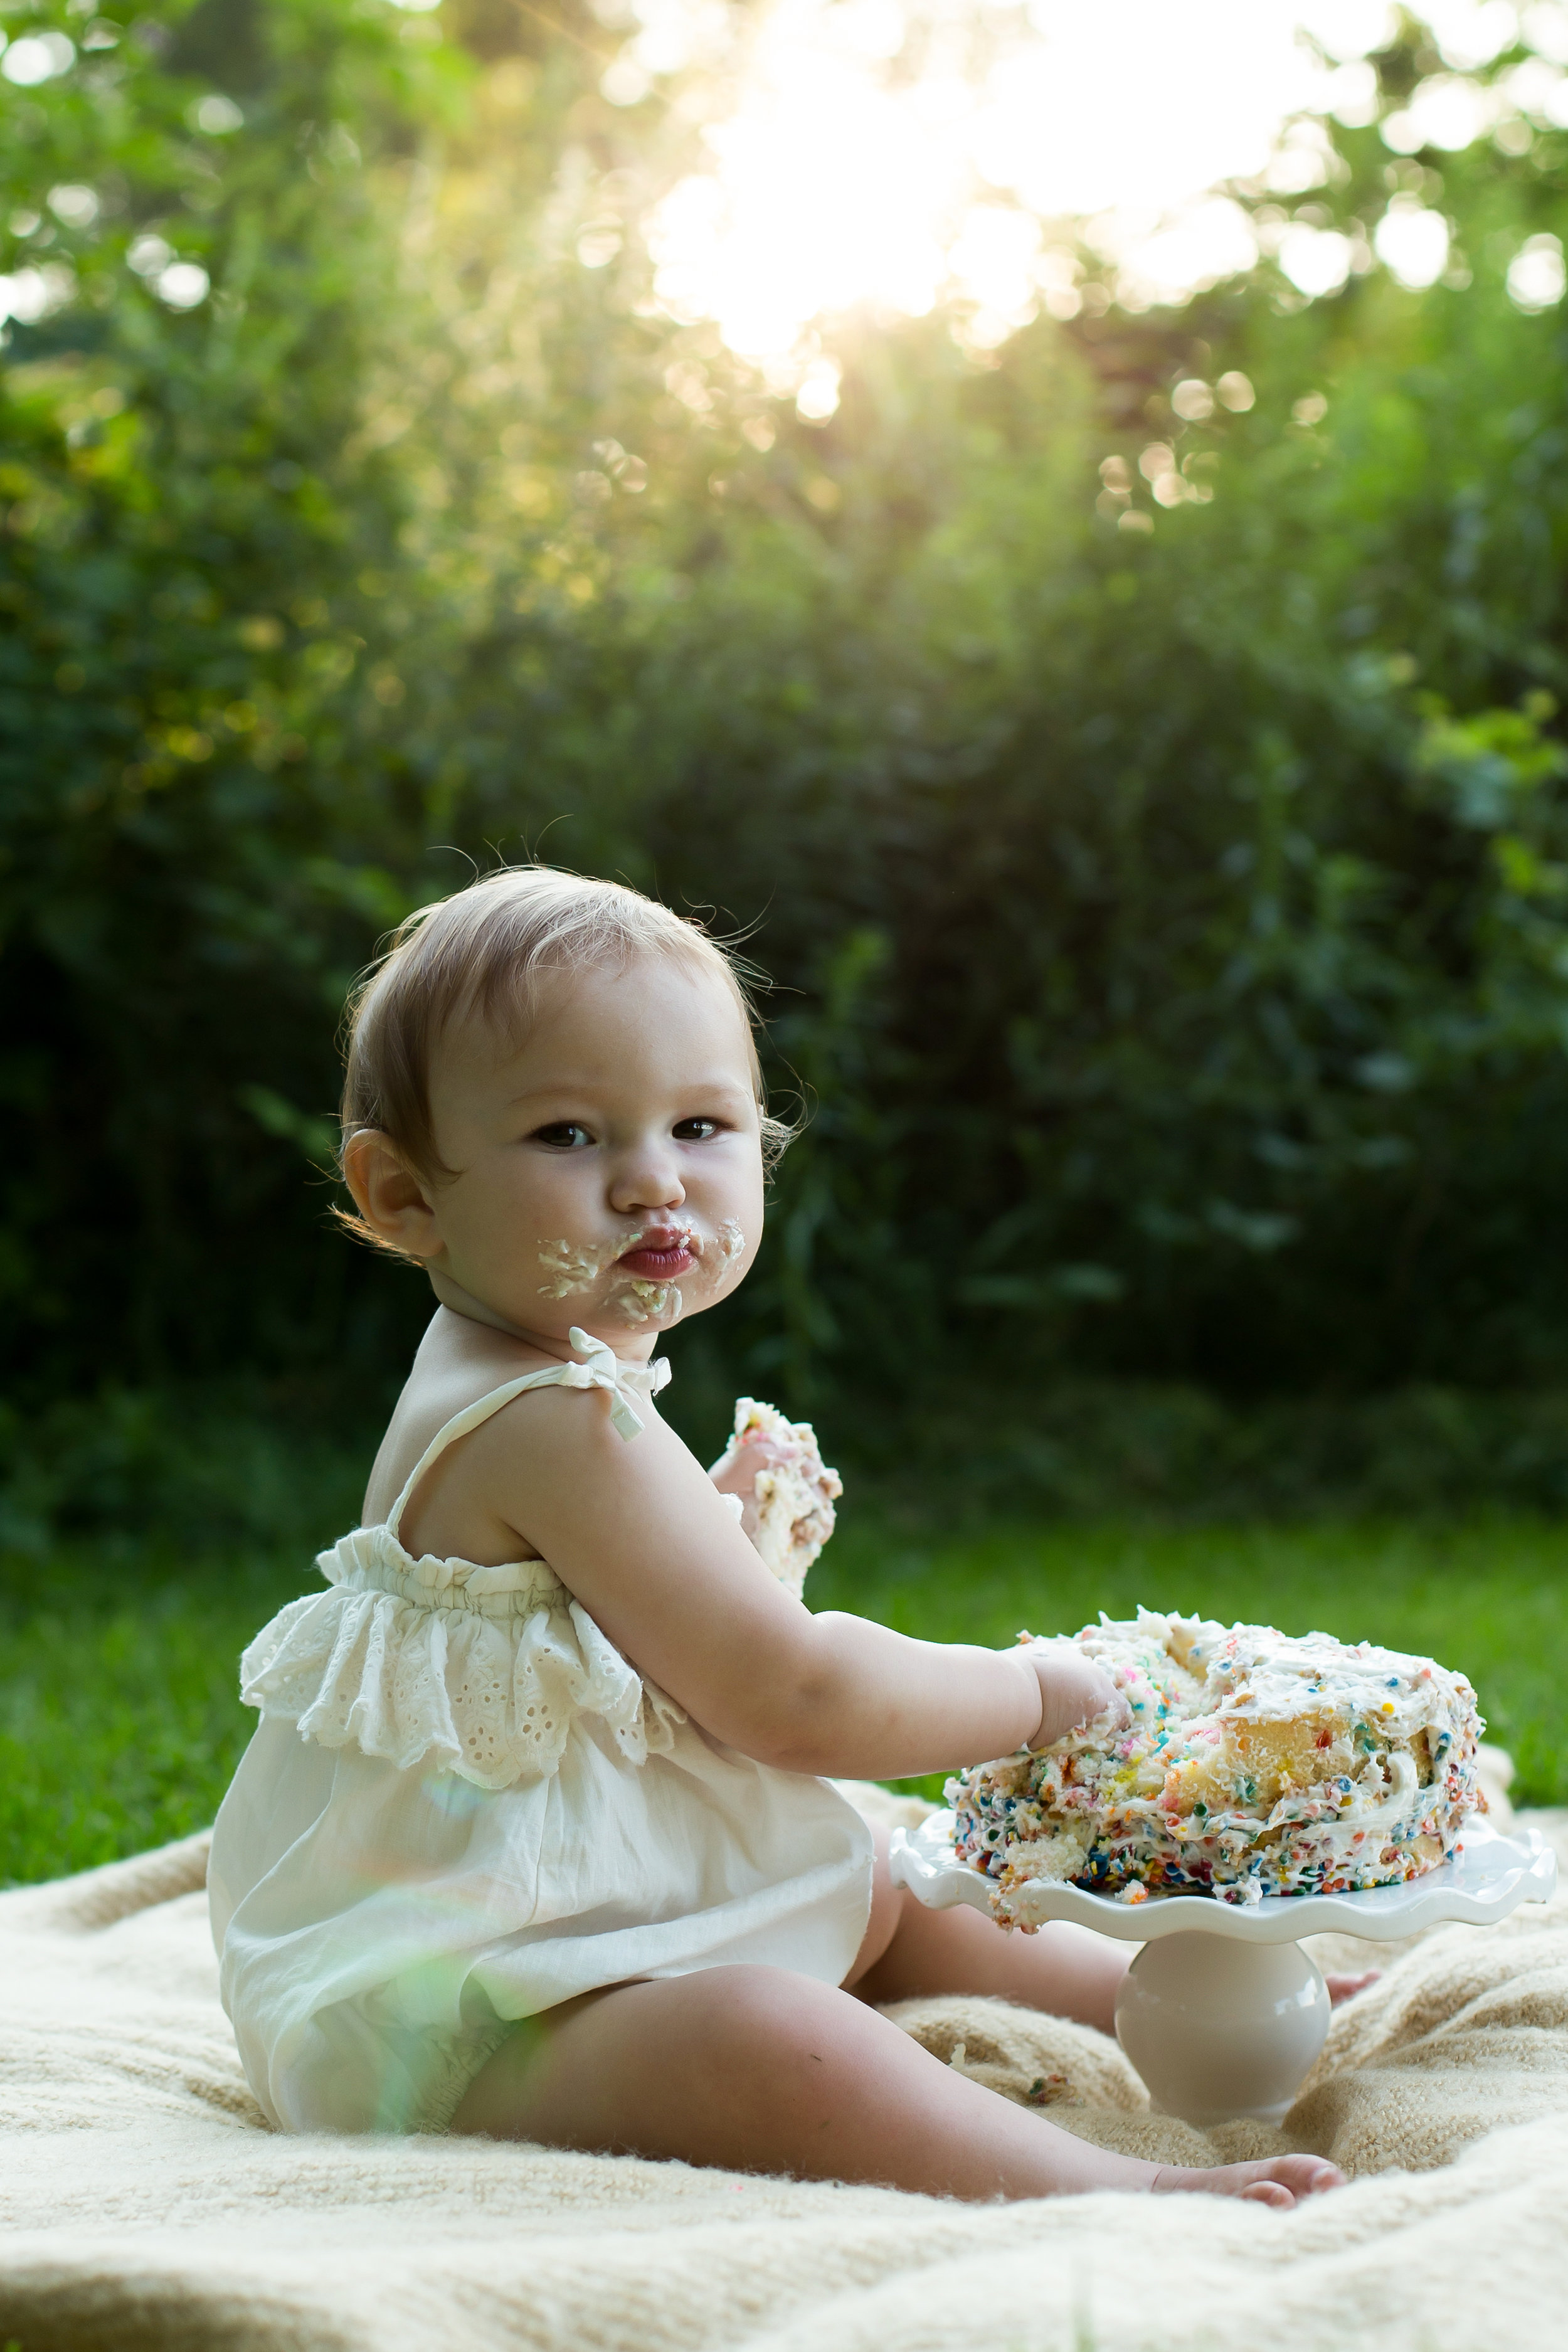 Standard Portrait Sessions - (3 Months and up, Family, Cake Smashes, Children's Portraits, Couples,)Standard Session: $175.00 plus Tax$35.00 Print CreditThese sessions generally last around 30-45 Minutes.